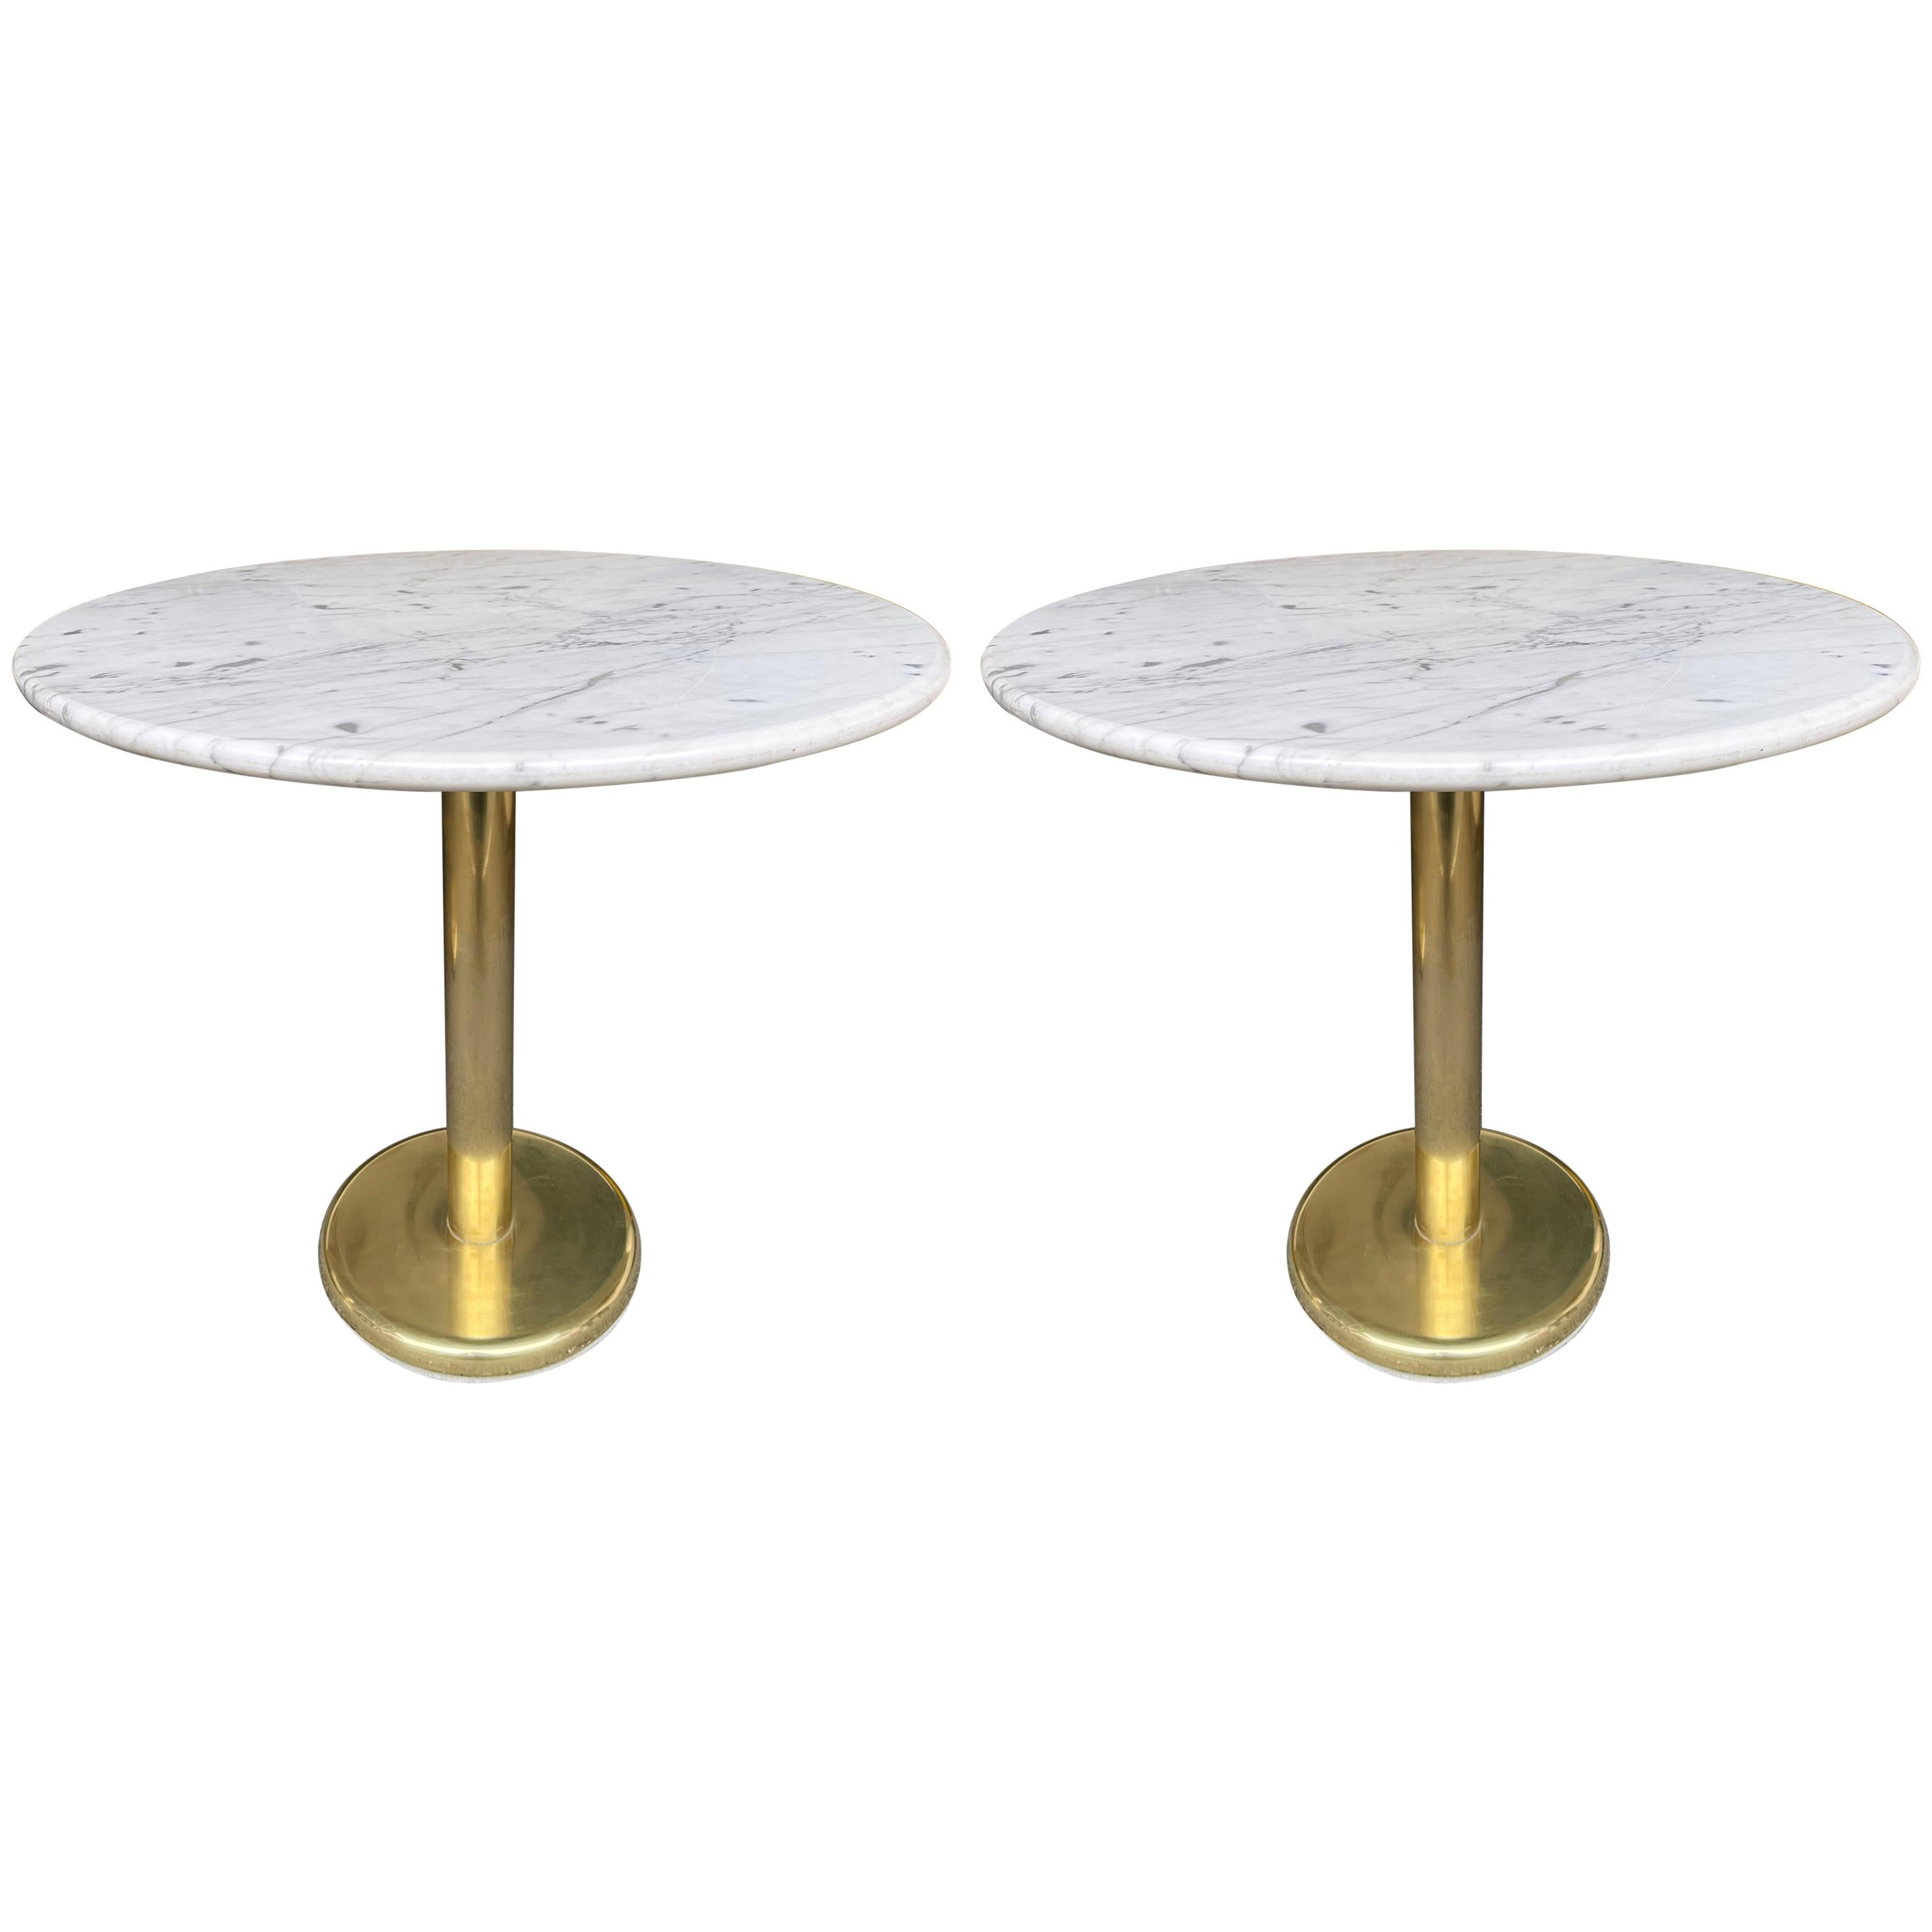 Pair of Brass and Marble Side Table, Italy, 1970s